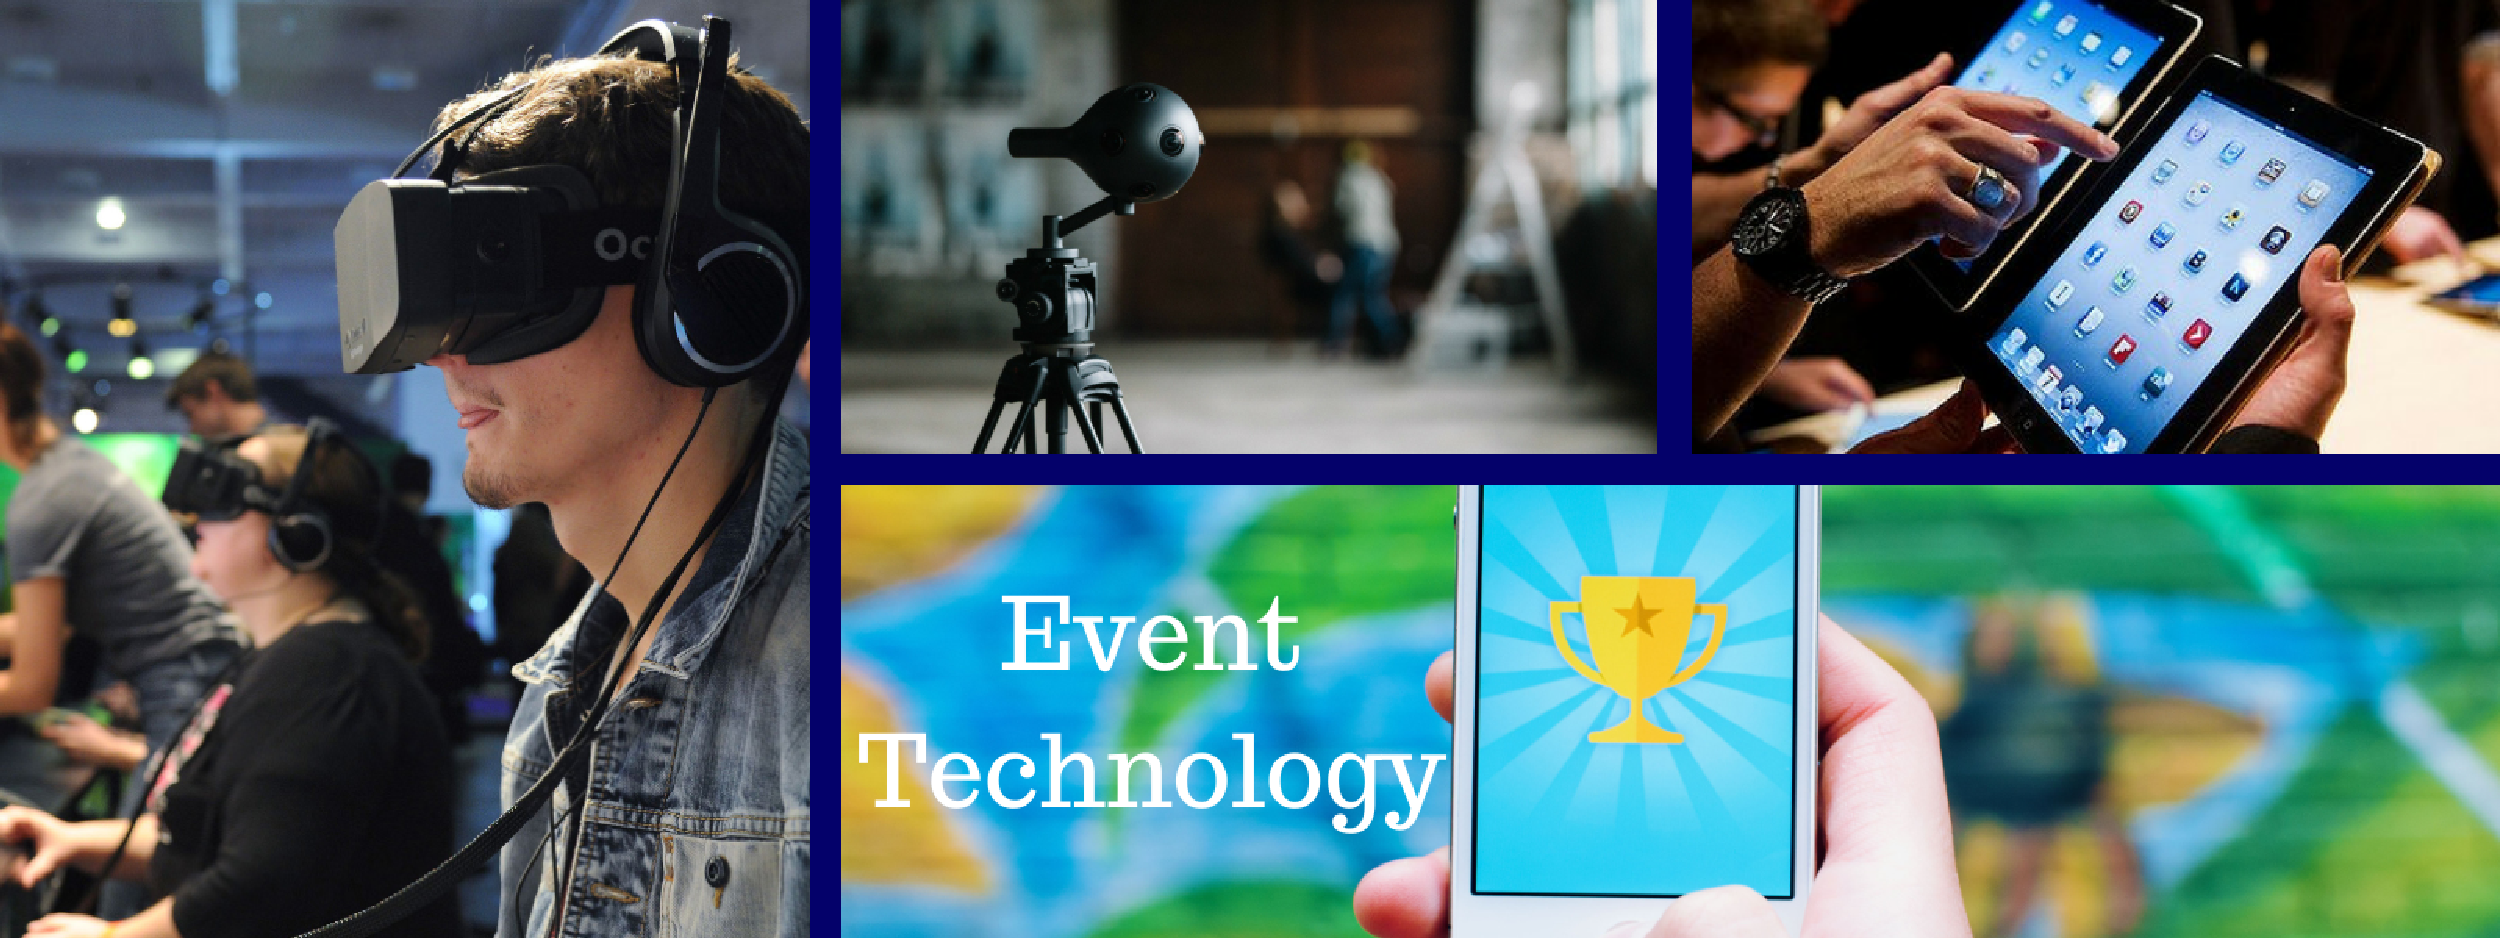 Following in the success of #event trendsetters, uncover 4 ideas using #technology to benefit events http://bit.ly/2kTiqlI #eventplanning